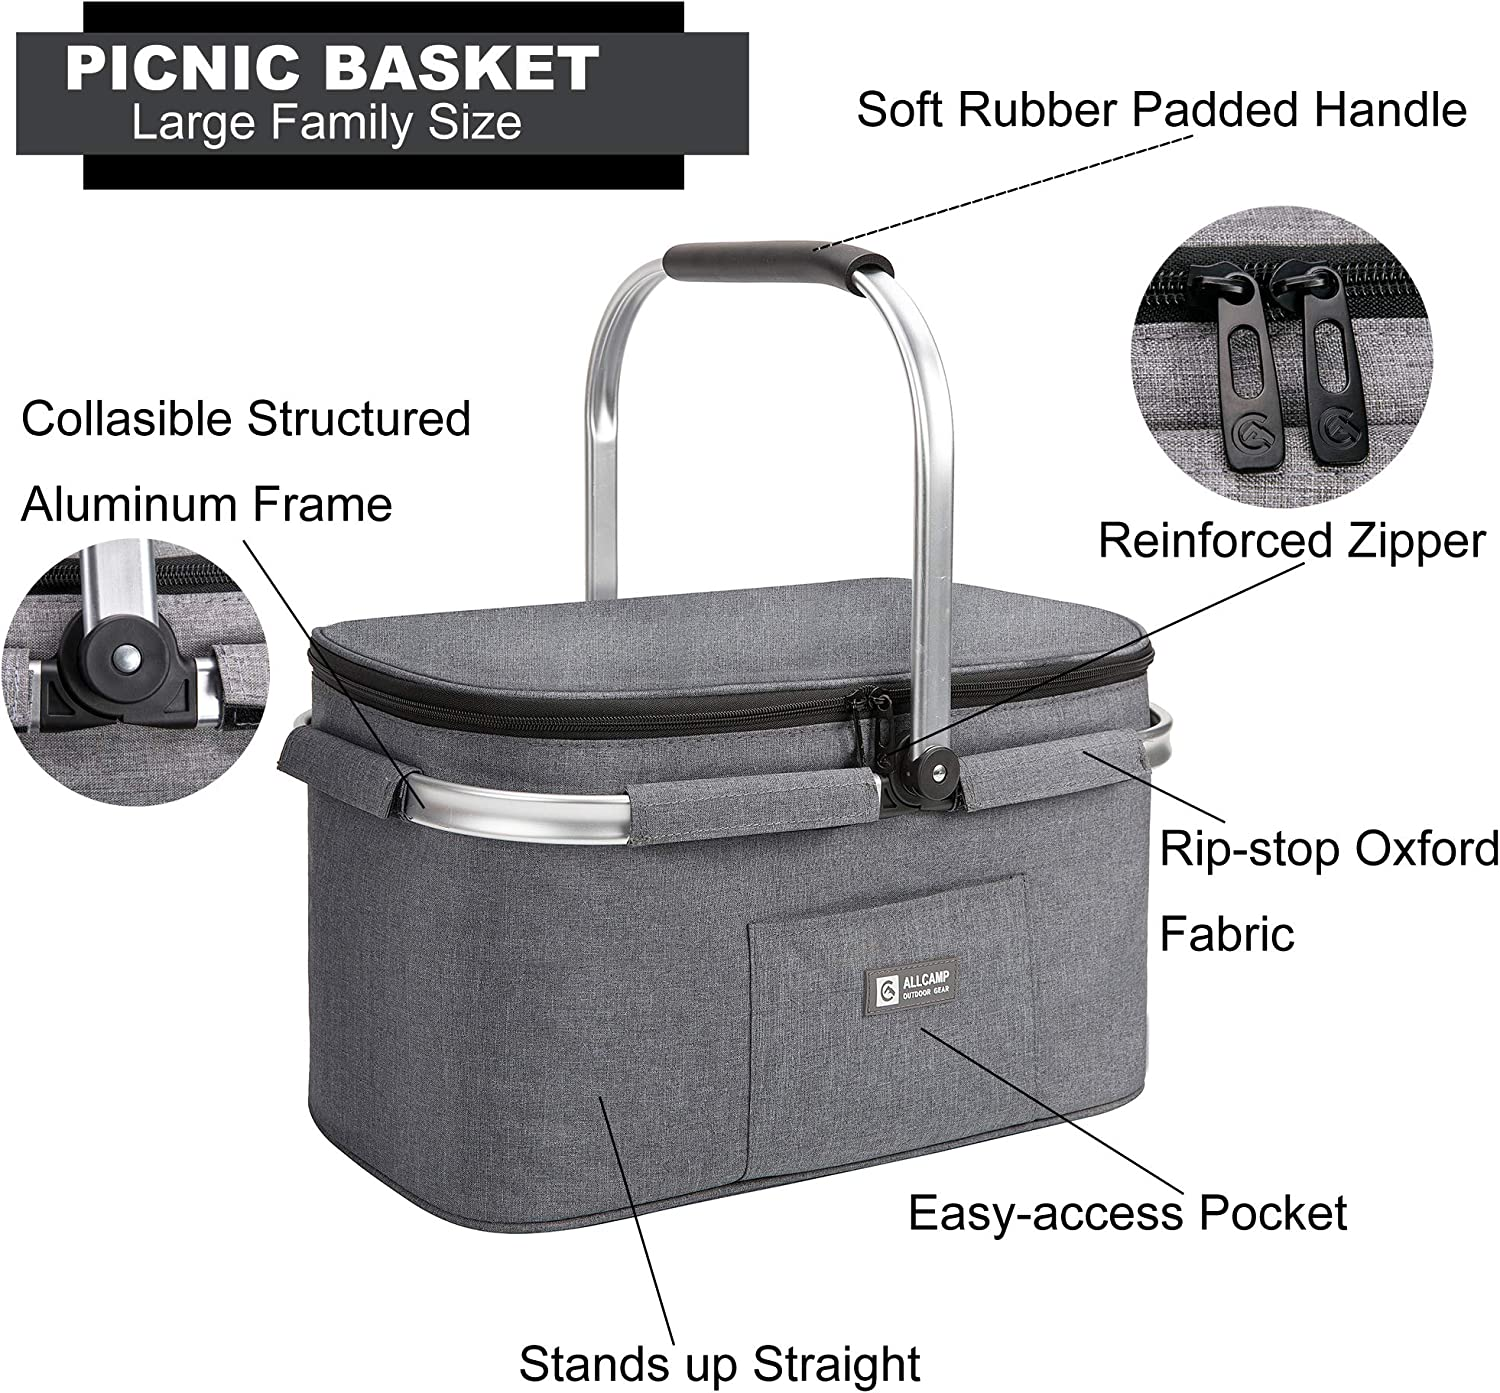 Apollo Walker Lightweight Extra Large Picnic Basket for 4 Person 32L Family Size Collapsible with 2 Ice Packs Light Gray